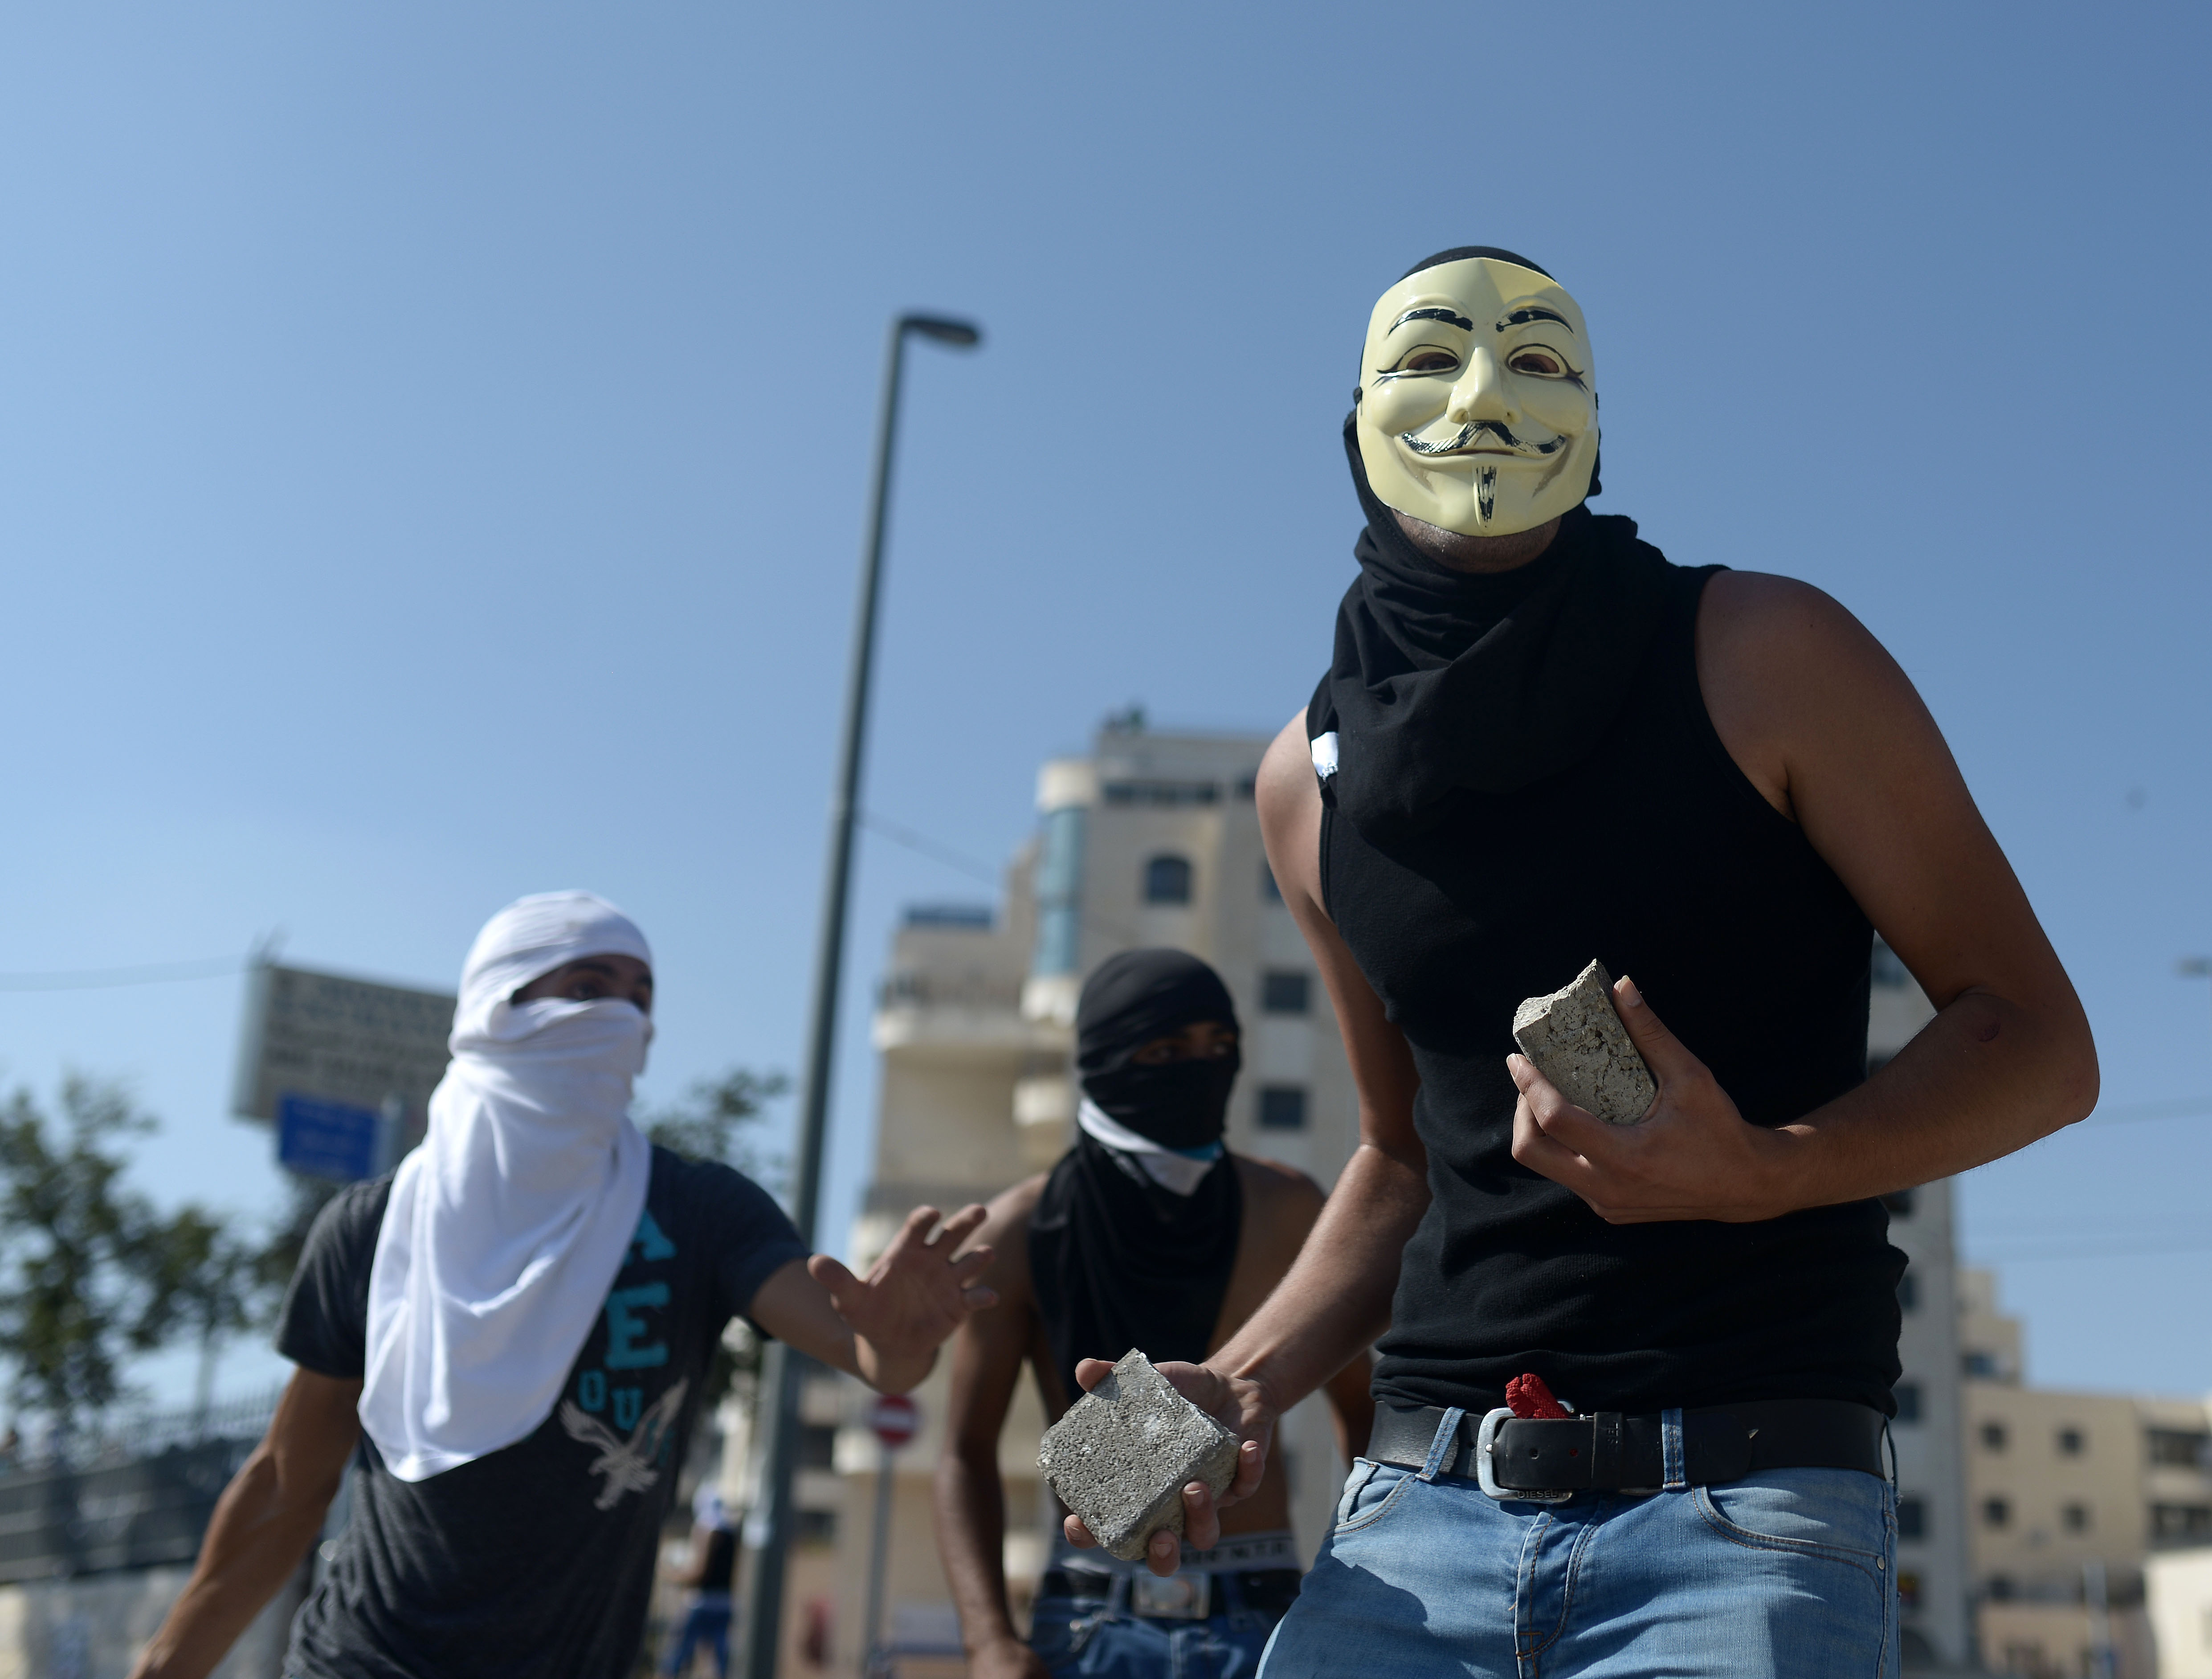 Clashes occurred between Israeli security forces and Palestinian youths during the funeral ceremony held for Muhammad Abu Kdear in Jerusalem on July 4, 2014.